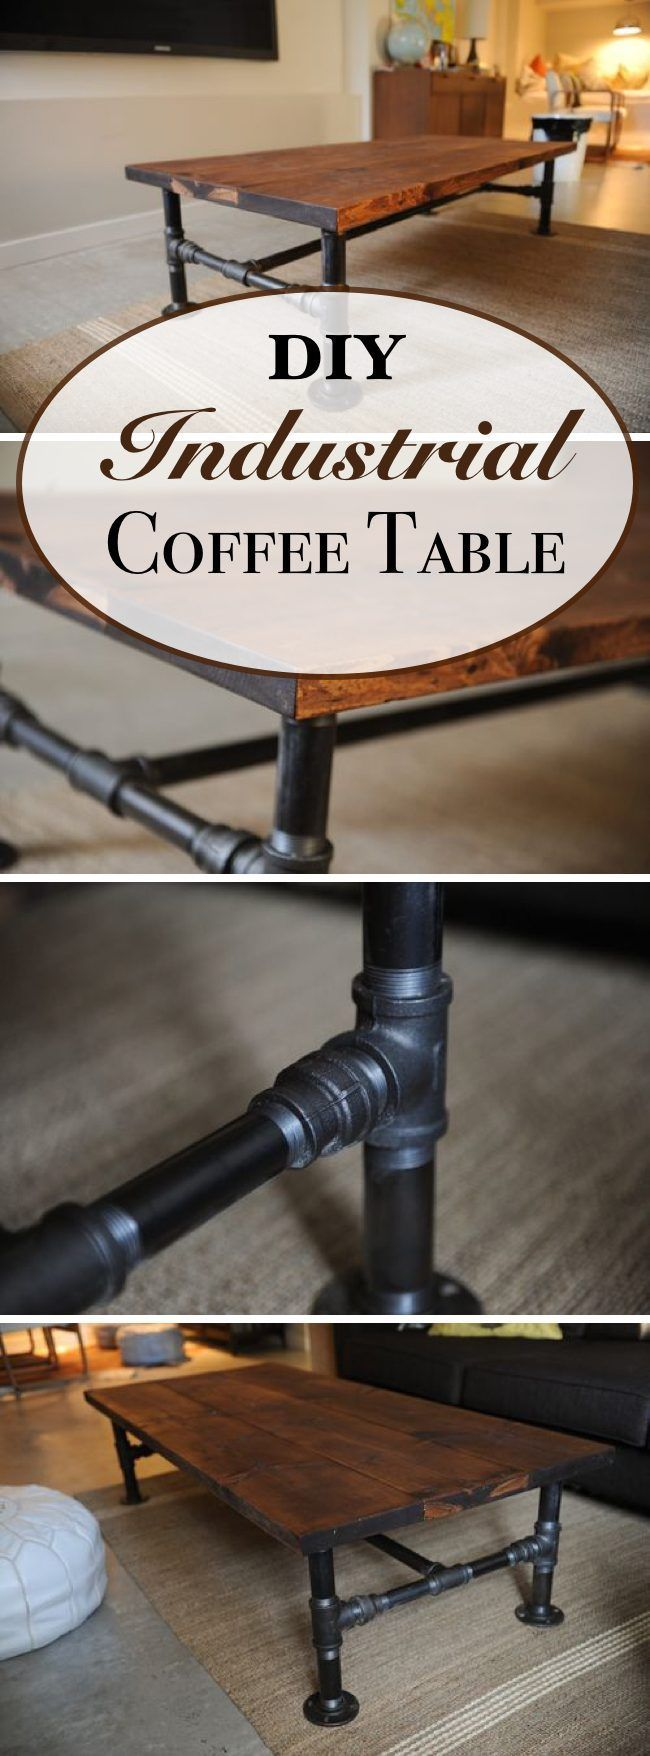 Industrial Coffee Table DIY / Build an industrial piping table that combine the rustic warmth with cold industrial elements.